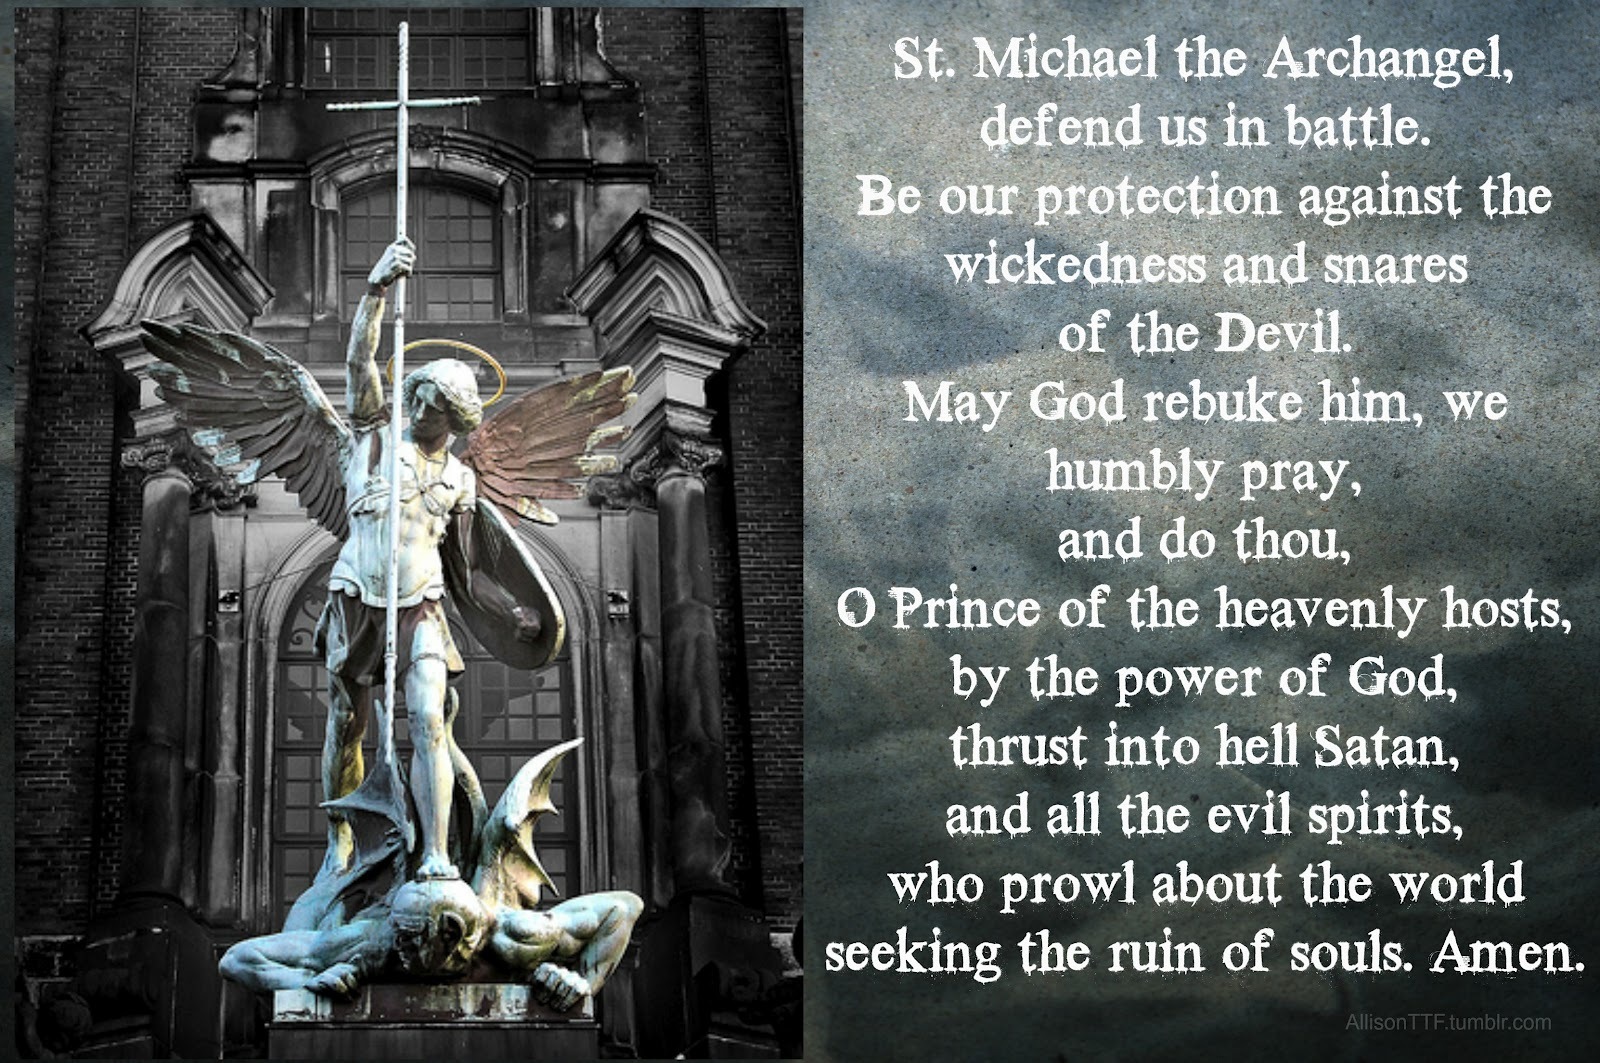 Happy feast day of st michael the archangel catholic photo credit allison ttf tumblr biocorpaavc Images